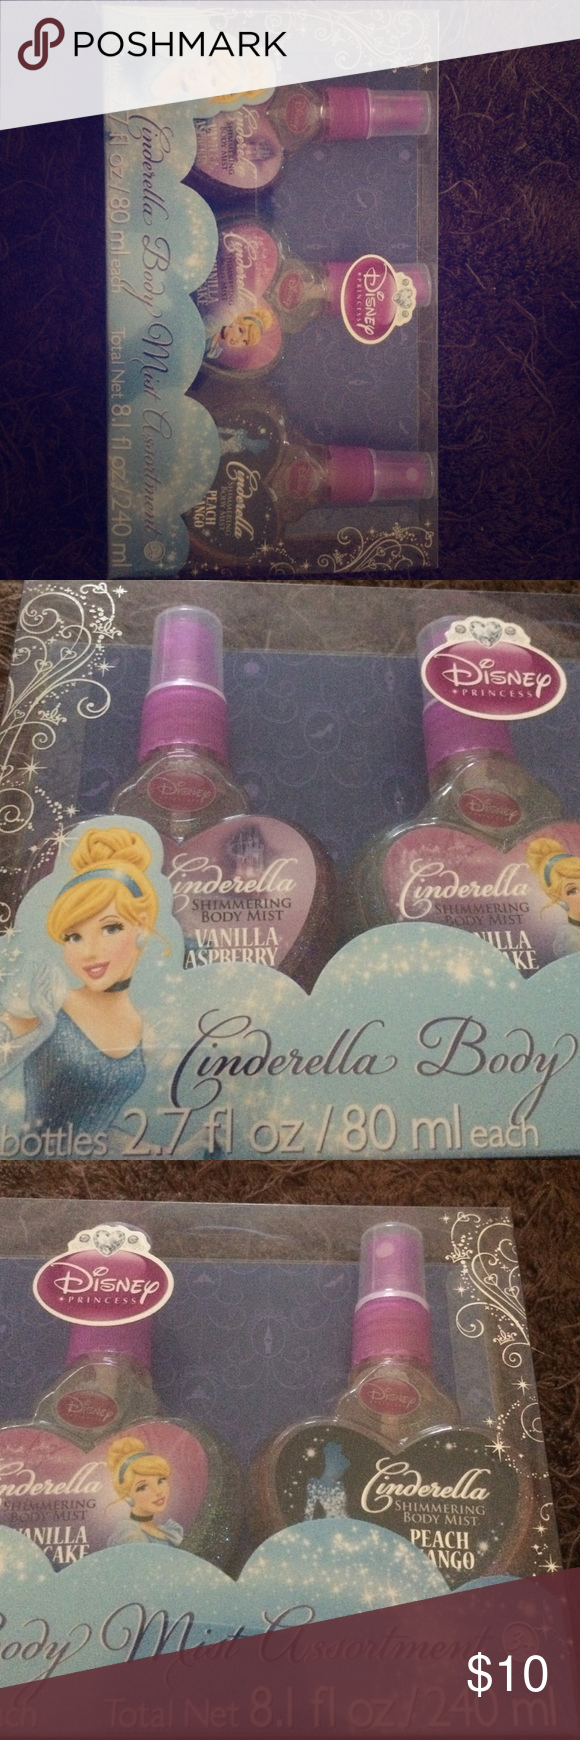 Disney Cinderella Shimmering Body Mist 3 2.7fl oz bottles of shimmering body mist. The bottles feature Disney Princess Cinderella. New, never been used and come in the original packaging. Great gift for princesses of all ages. Disney Other